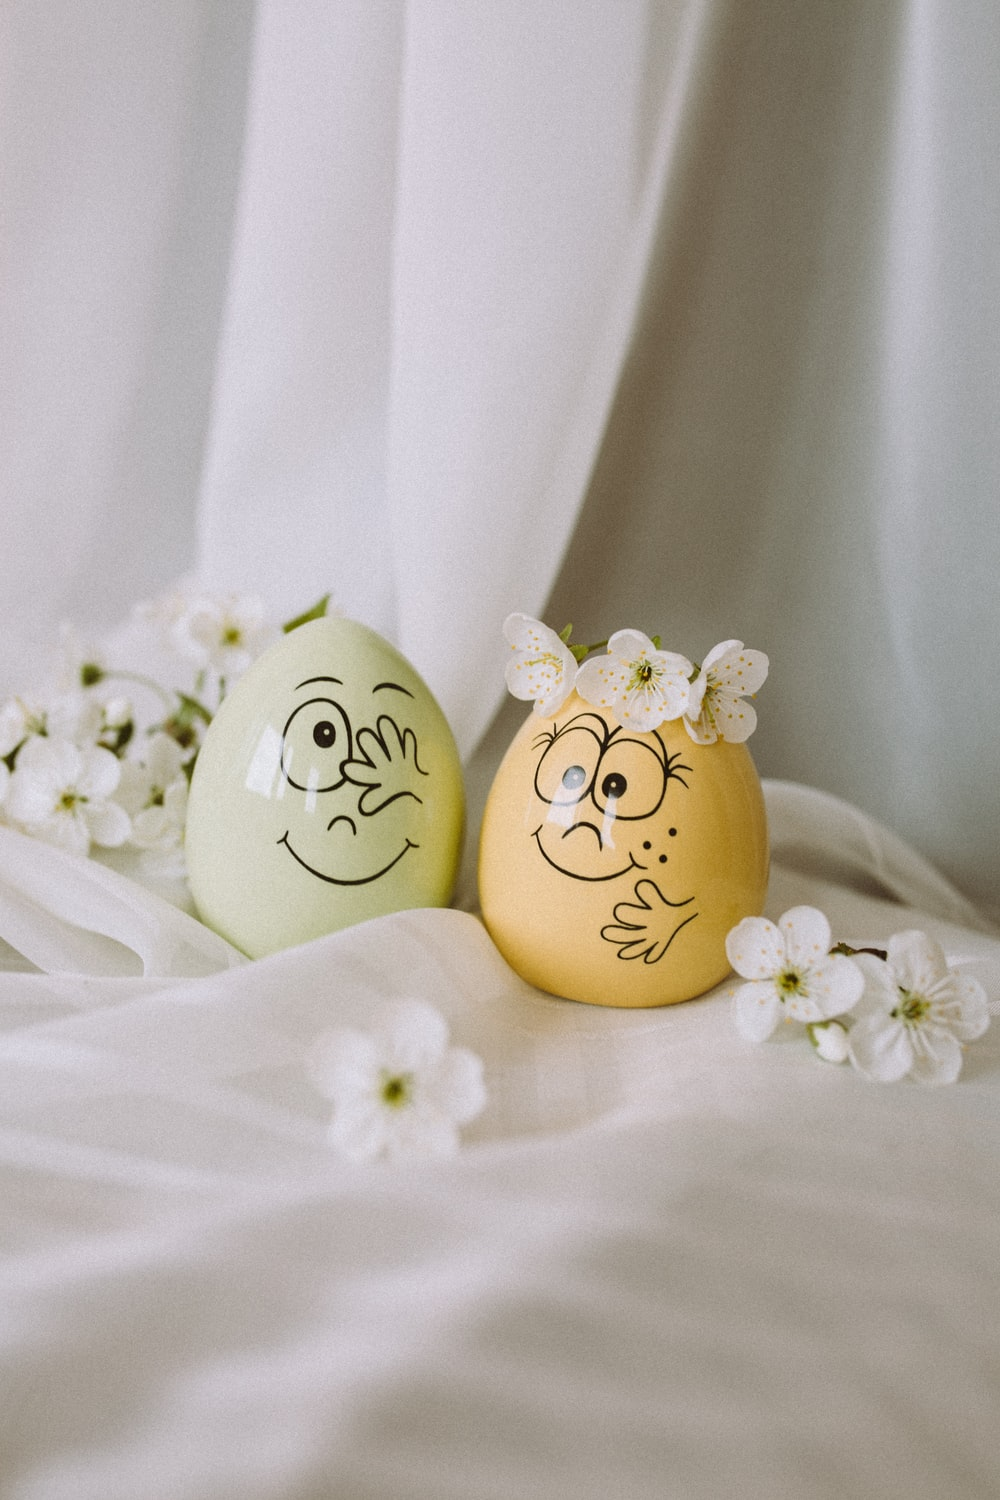 white and yellow floral egg ornament